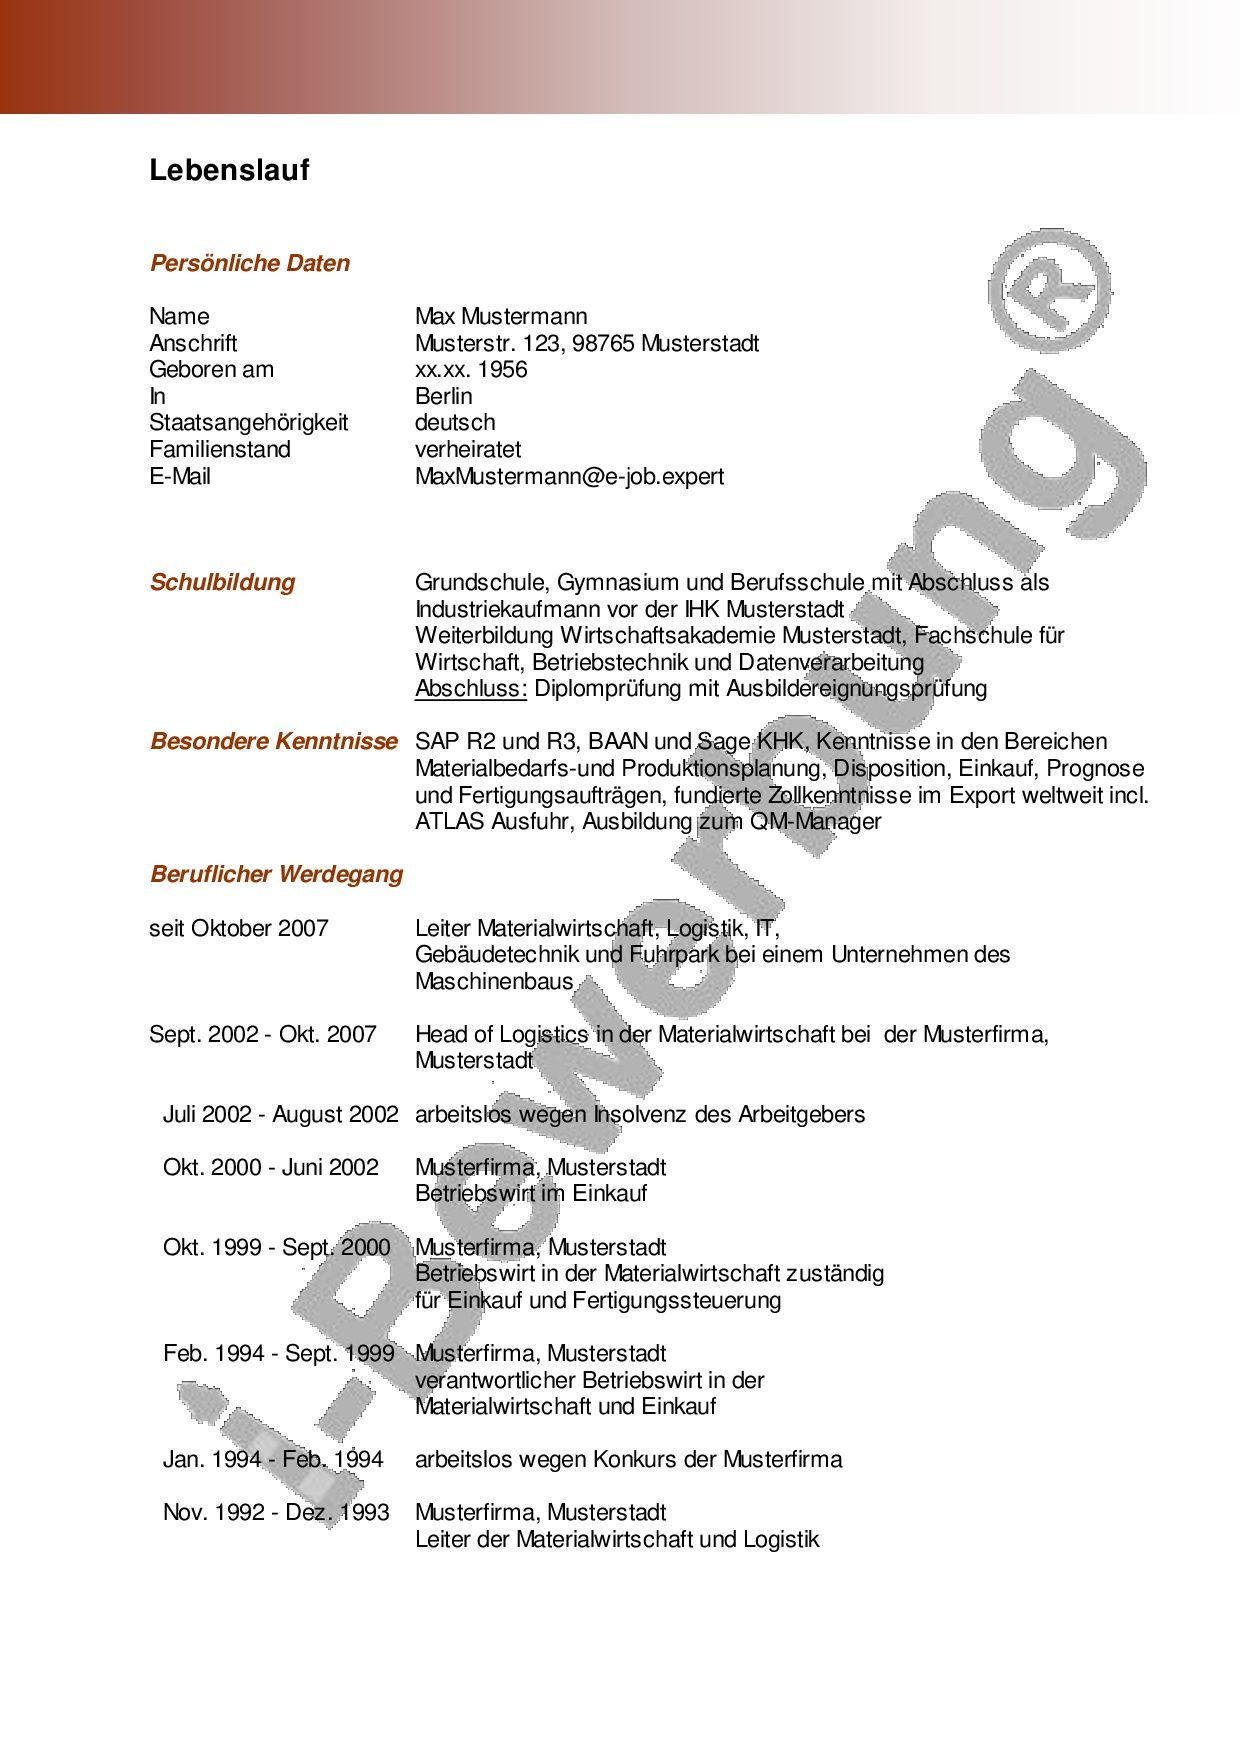 Charmant Perfekte Lebenslaufbeispiele Ideen Entry Level Resume